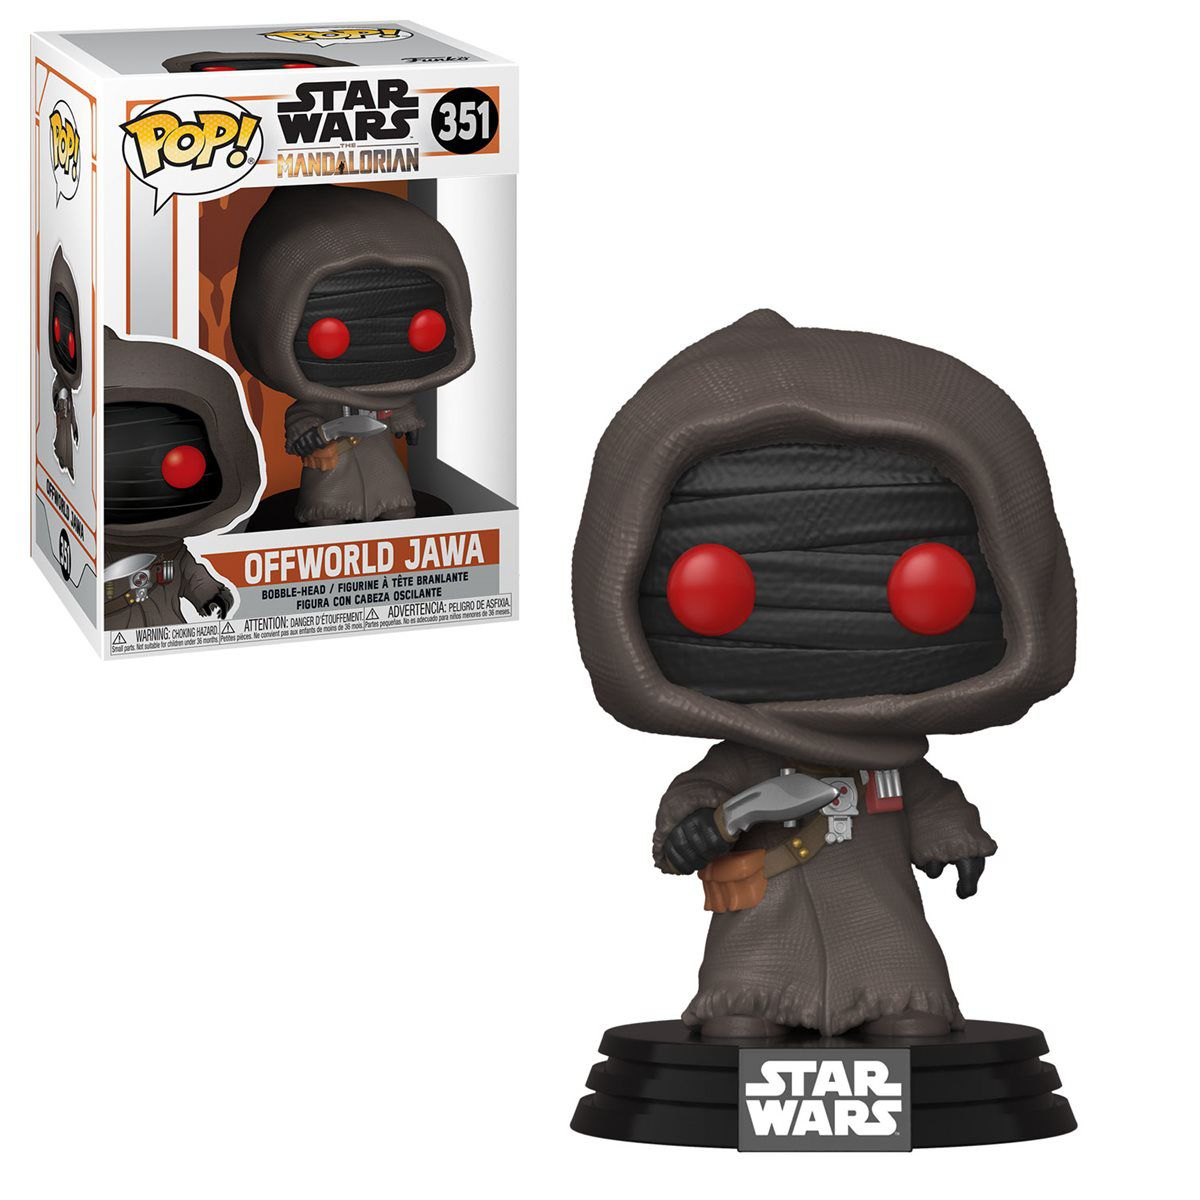 PRÉ VENDA: Funko Pop! Offworld Jawa: The Mandalorian (Star Wars) Disney+ #351 - Funko